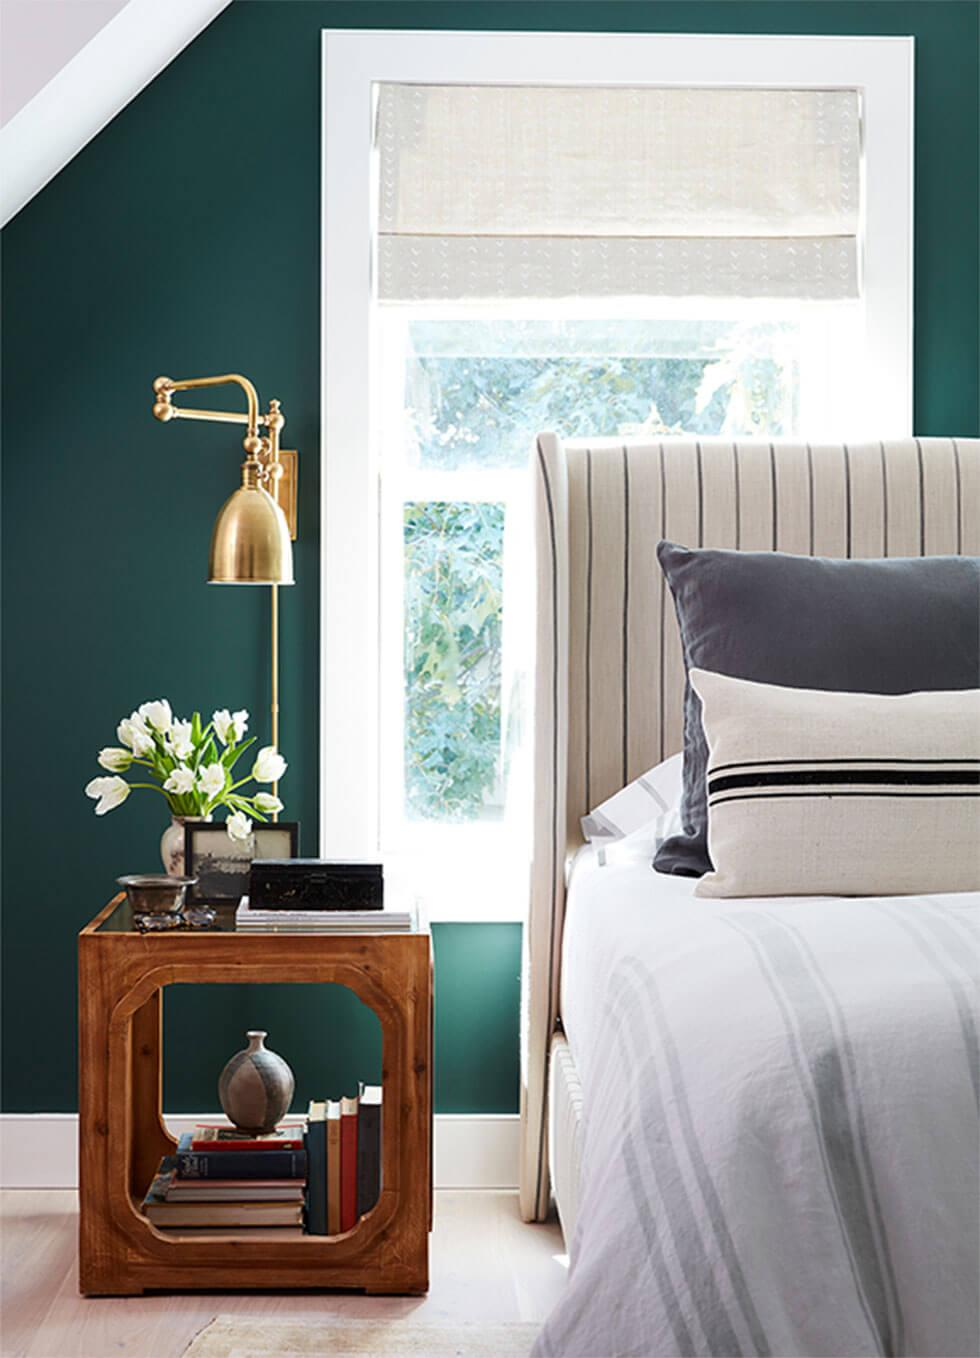 Bedroom feature wall in rich emerald green.